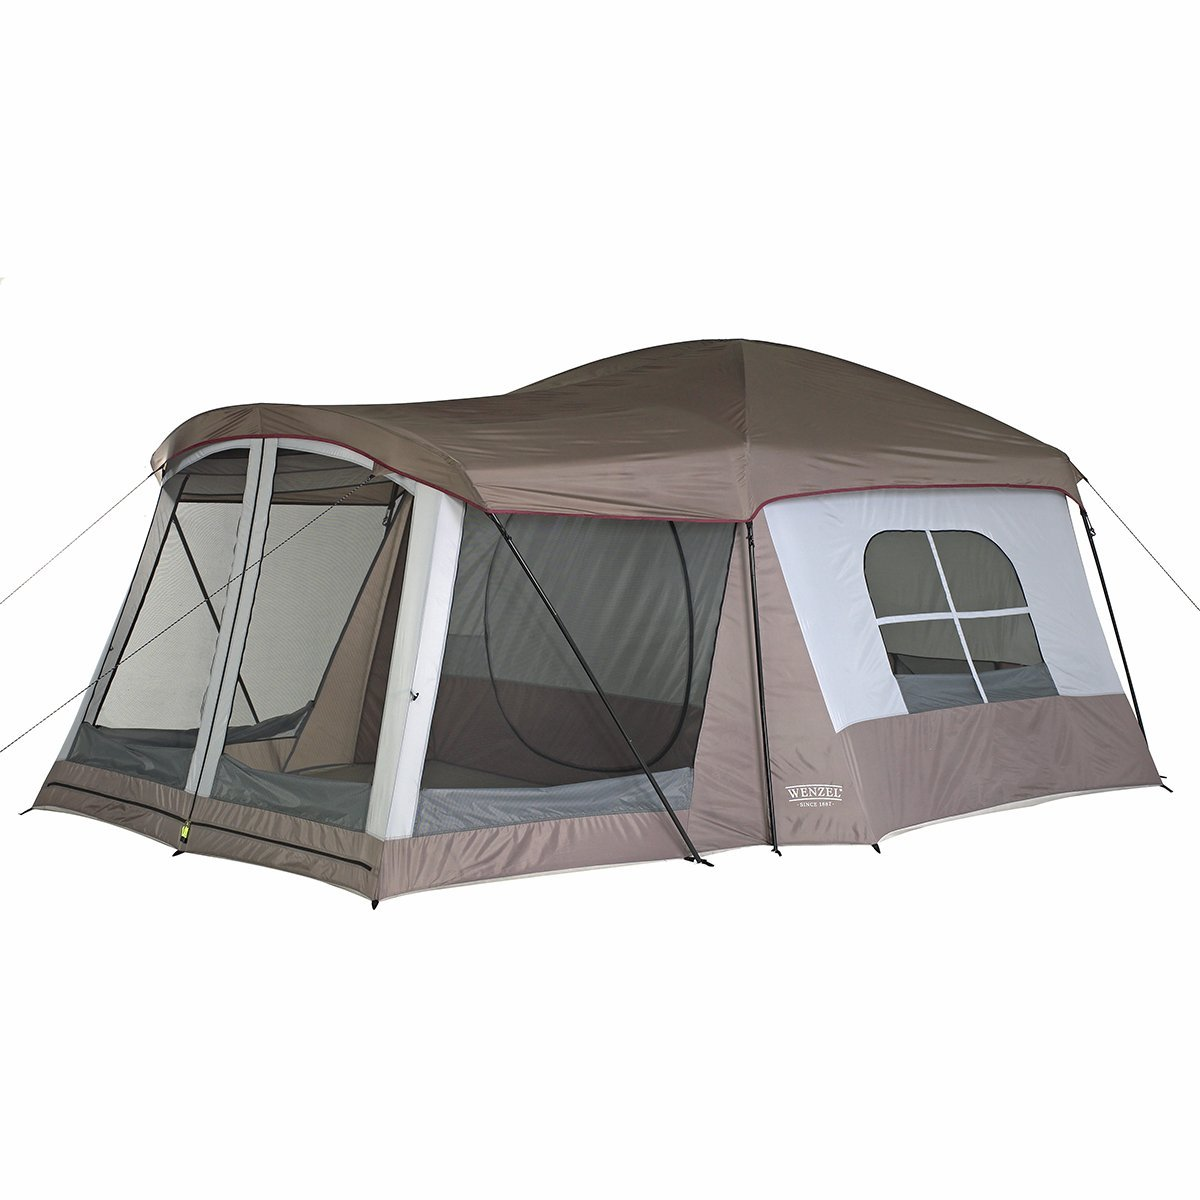 Best Instant Tent for Camping Reviews 8